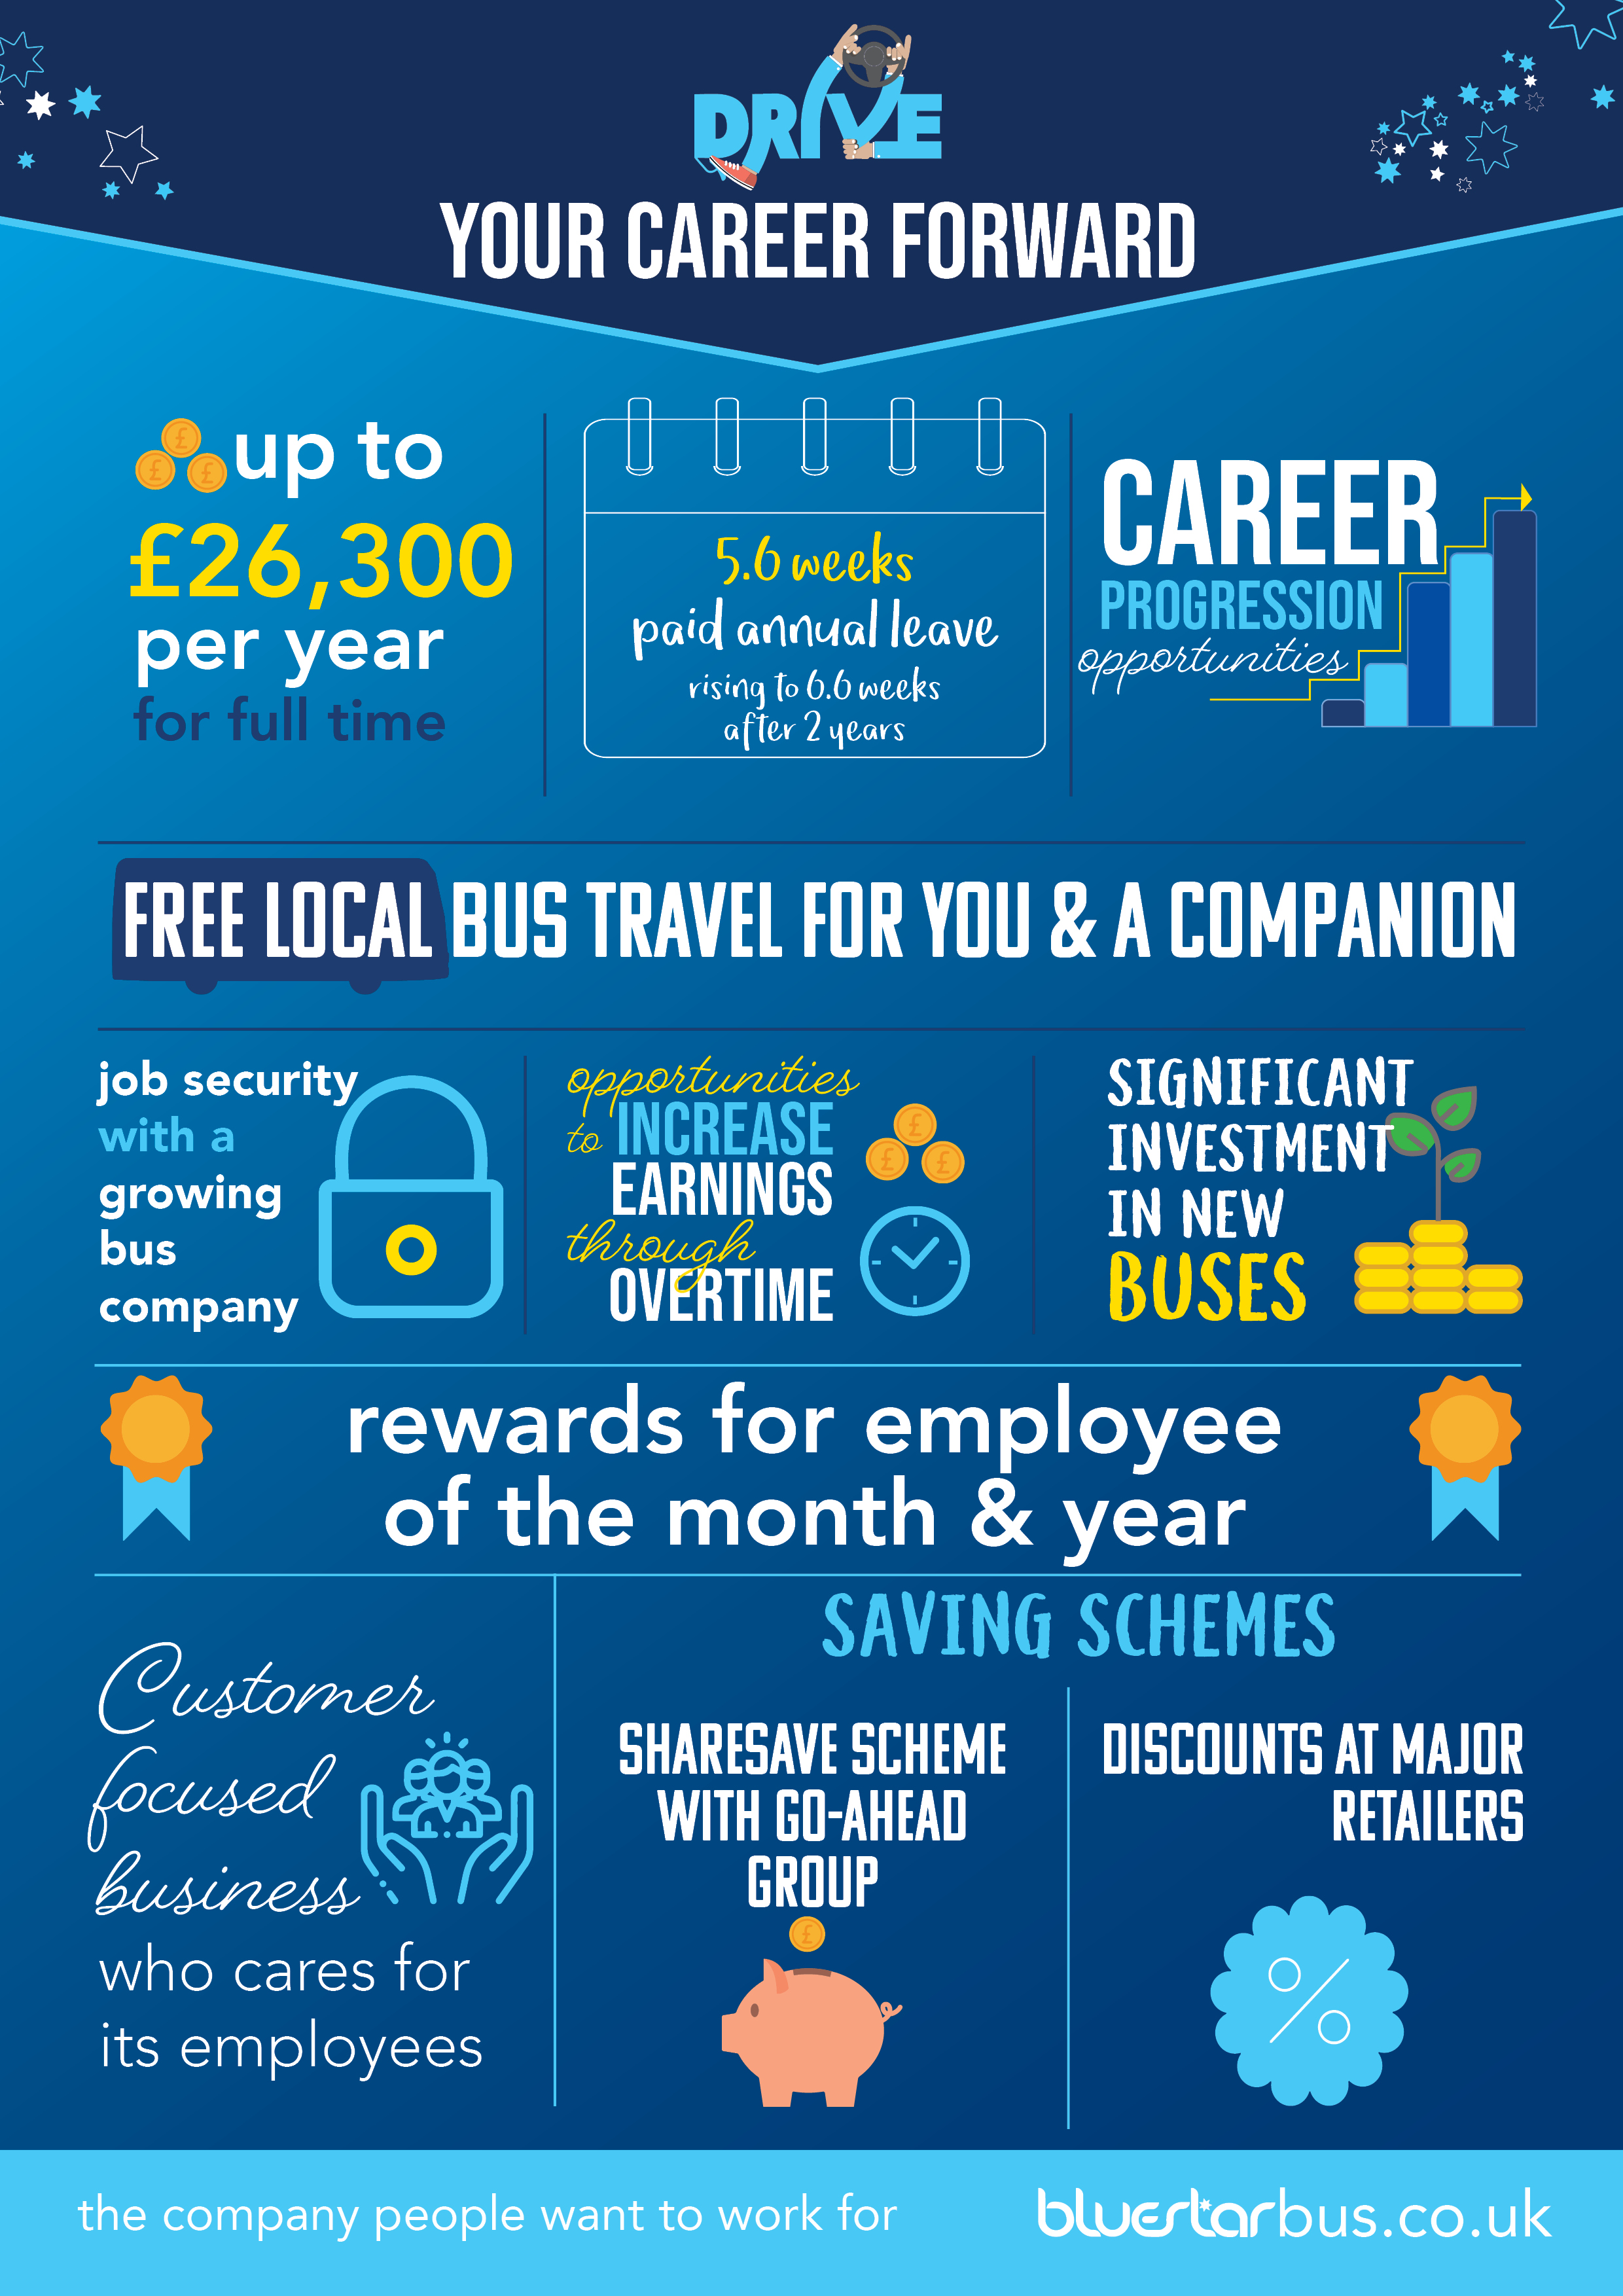 Infographic explaining the benefits of working for Bluestar - including earnings, overtime, holiday entitlement and benefits